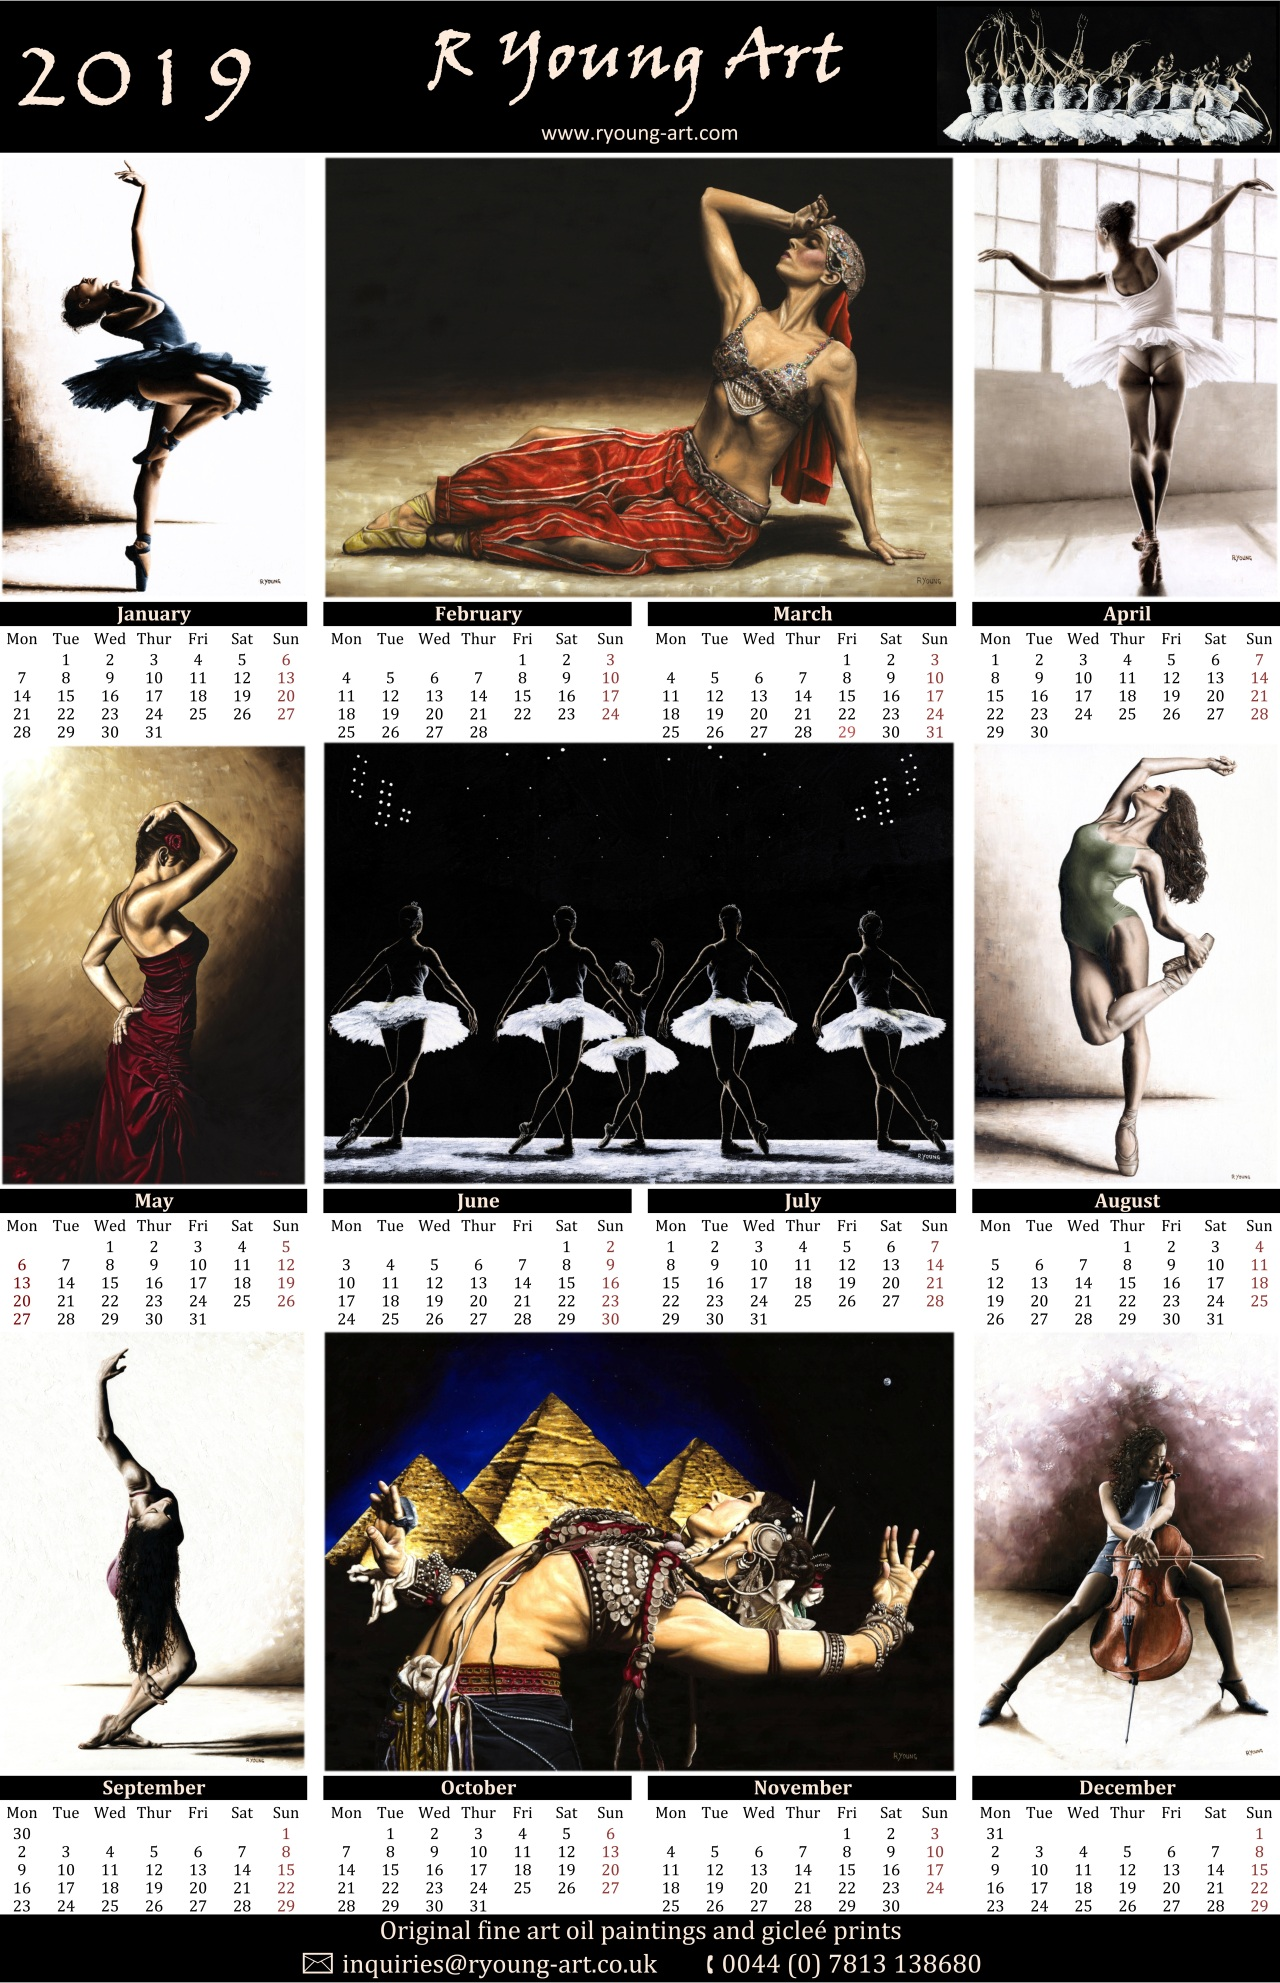 2019 R Young Art dance calendar - Available artwork